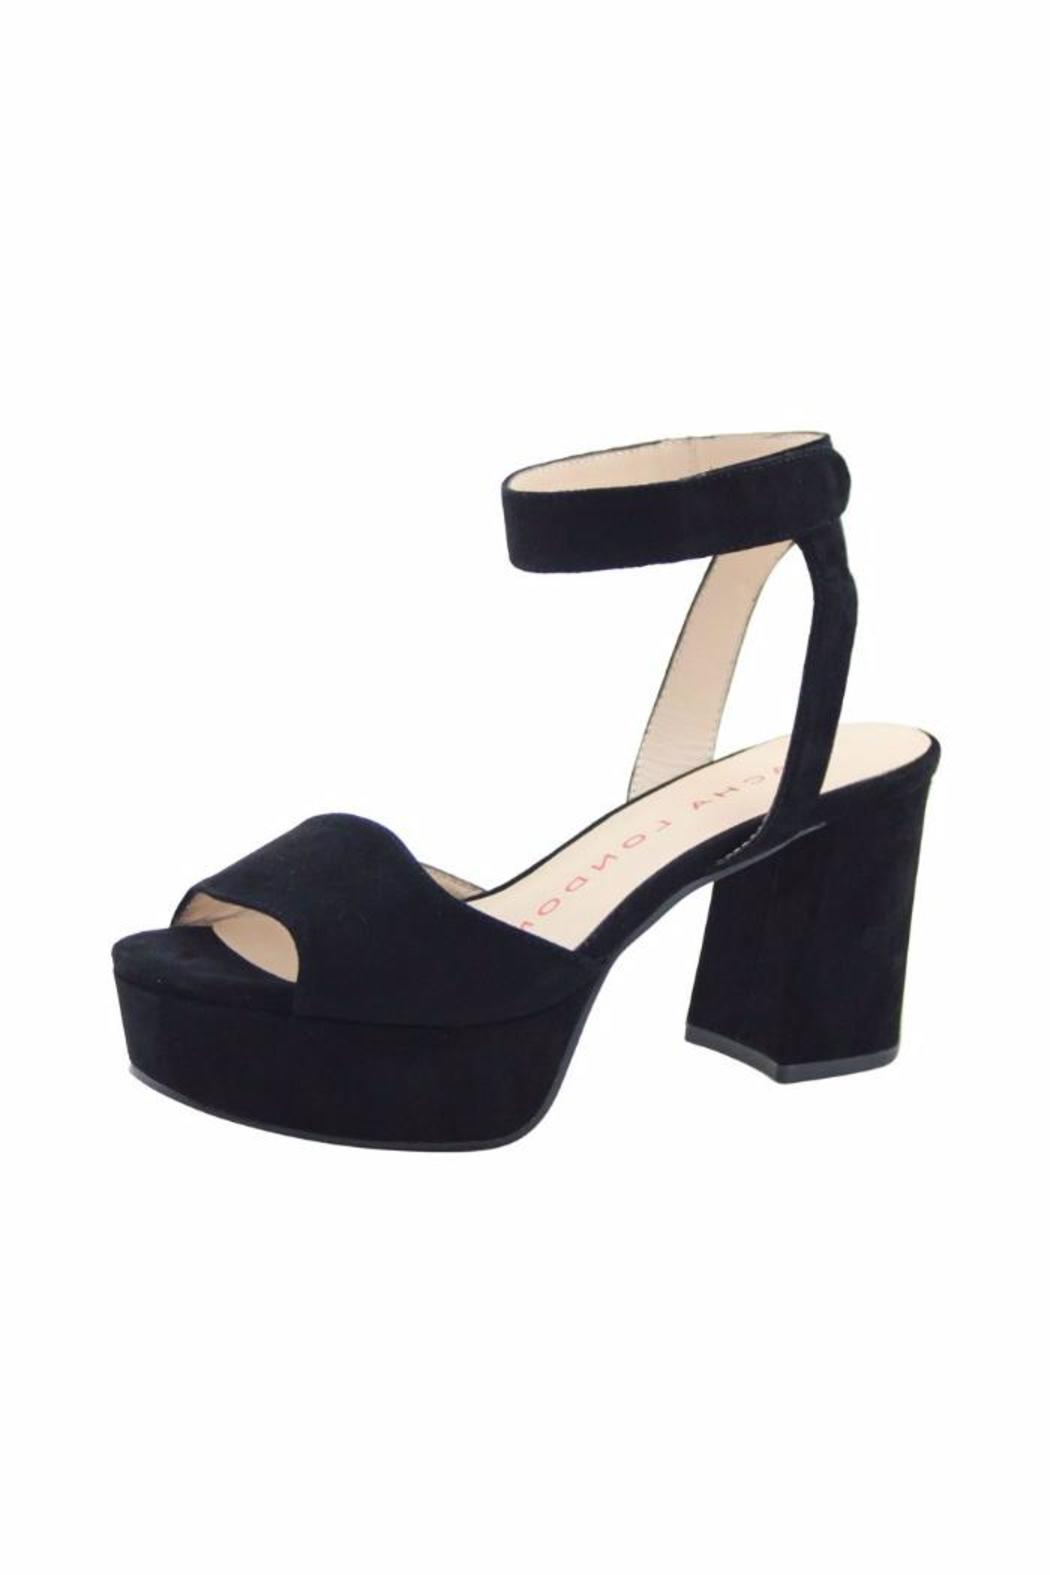 Sacha London Black Suede Platform - Main Image